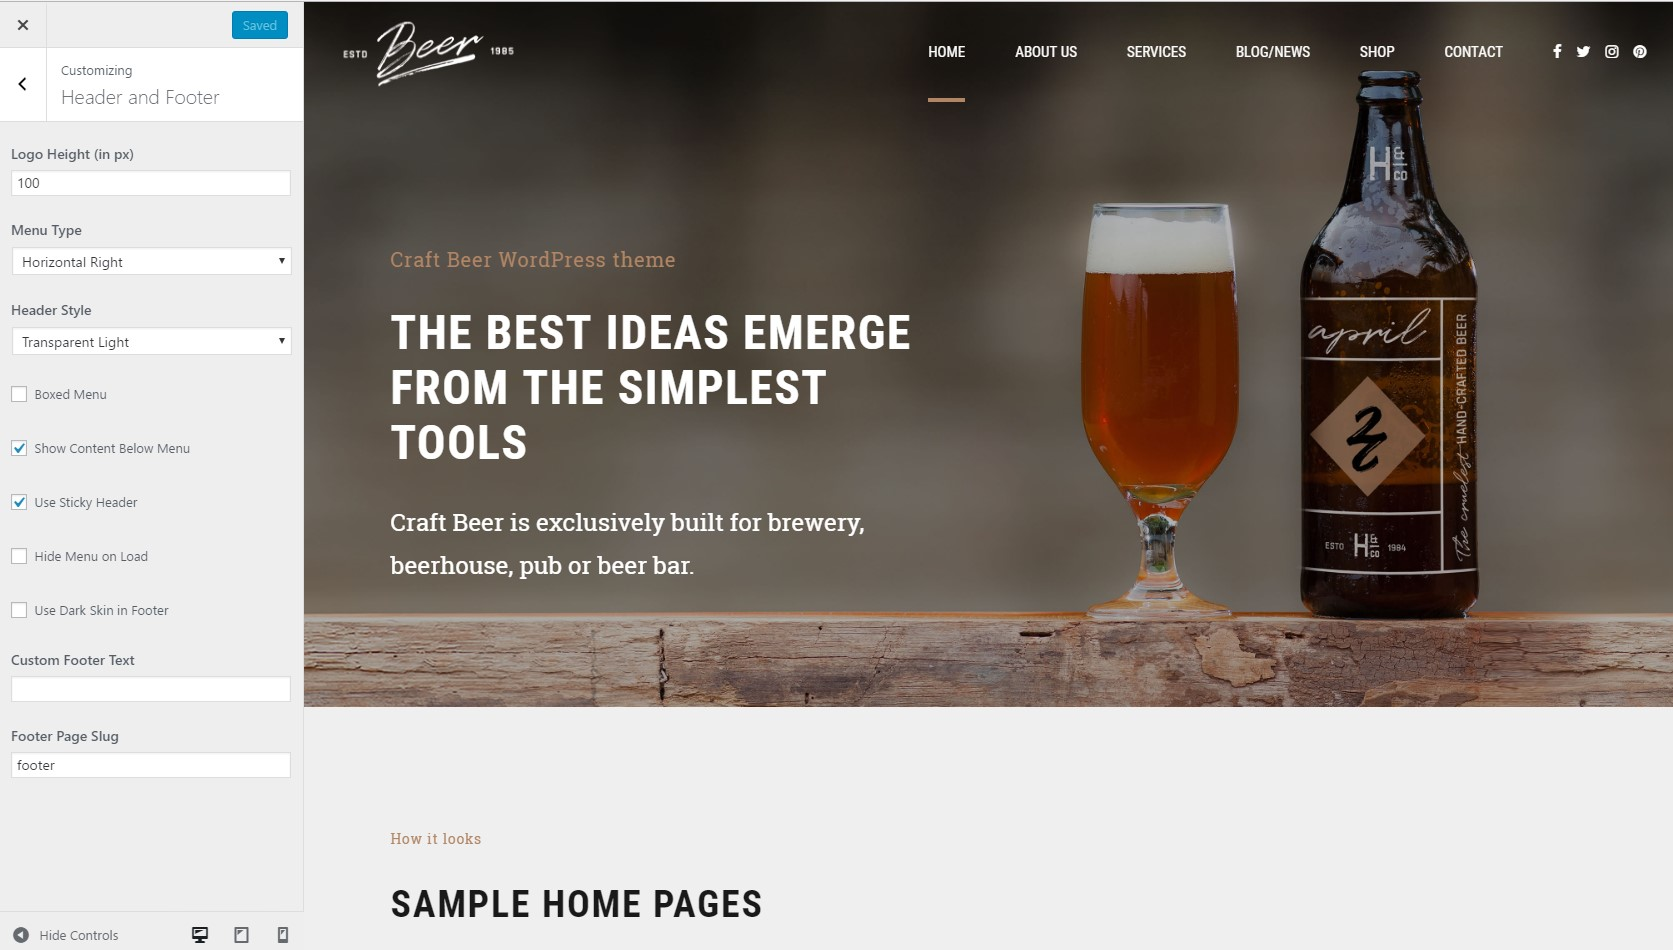 https://documentation.bold-themes.com/craft-beer/wp-content/uploads/sites/17/2017/06/header-and-footer.jpg